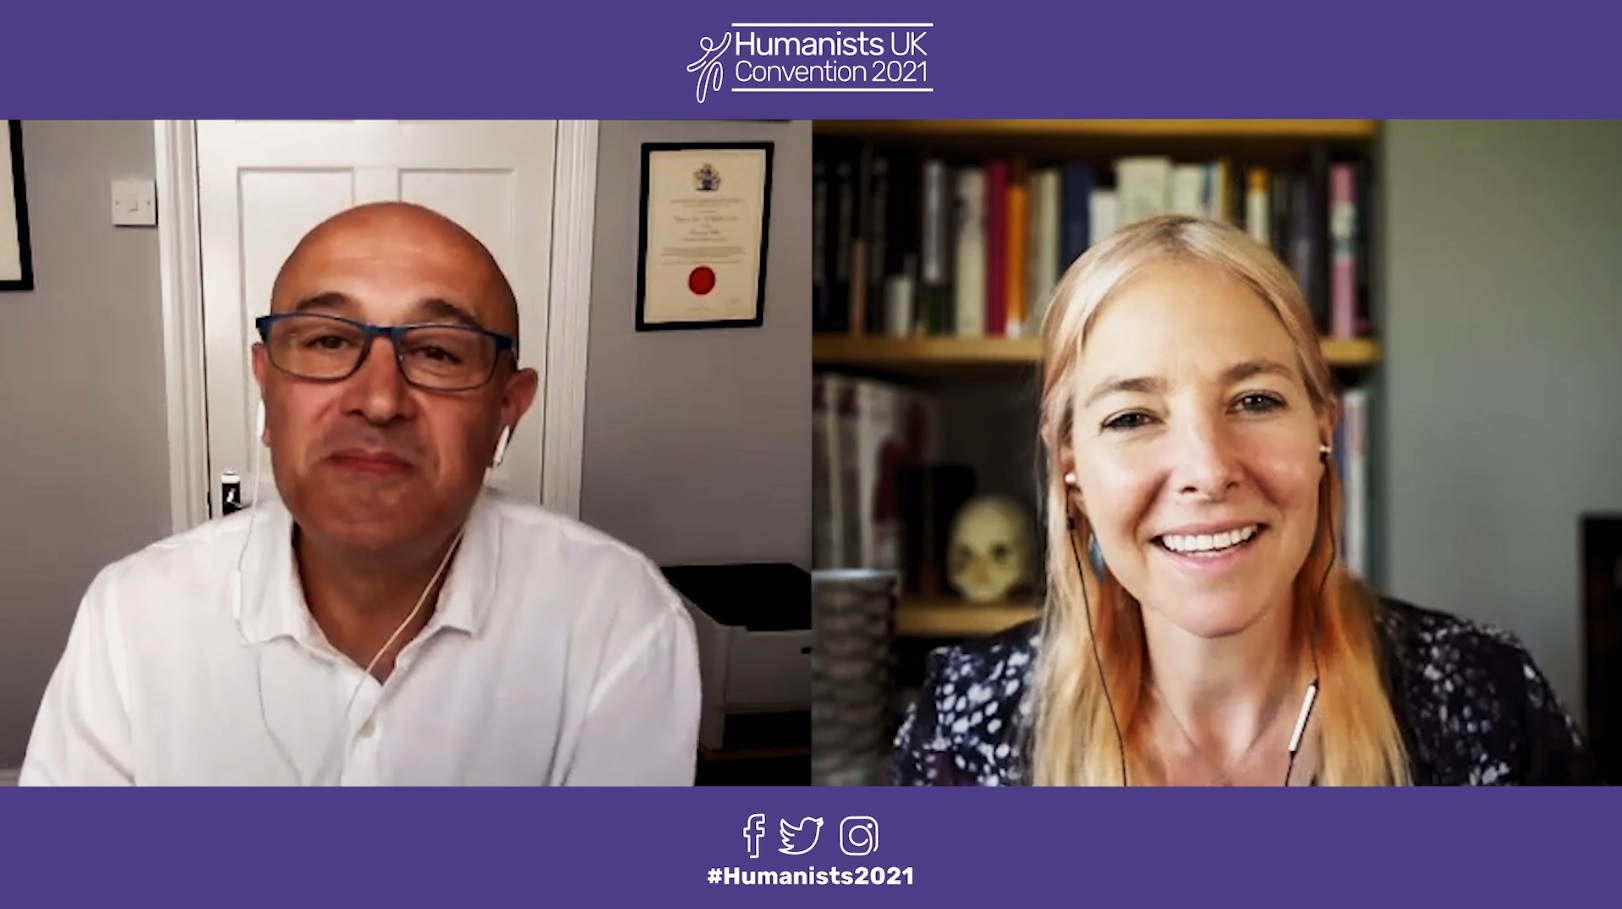 Jim Al-Khalili (L) and Alice Roberts (R) speaking at Humanists UK Convention 2021